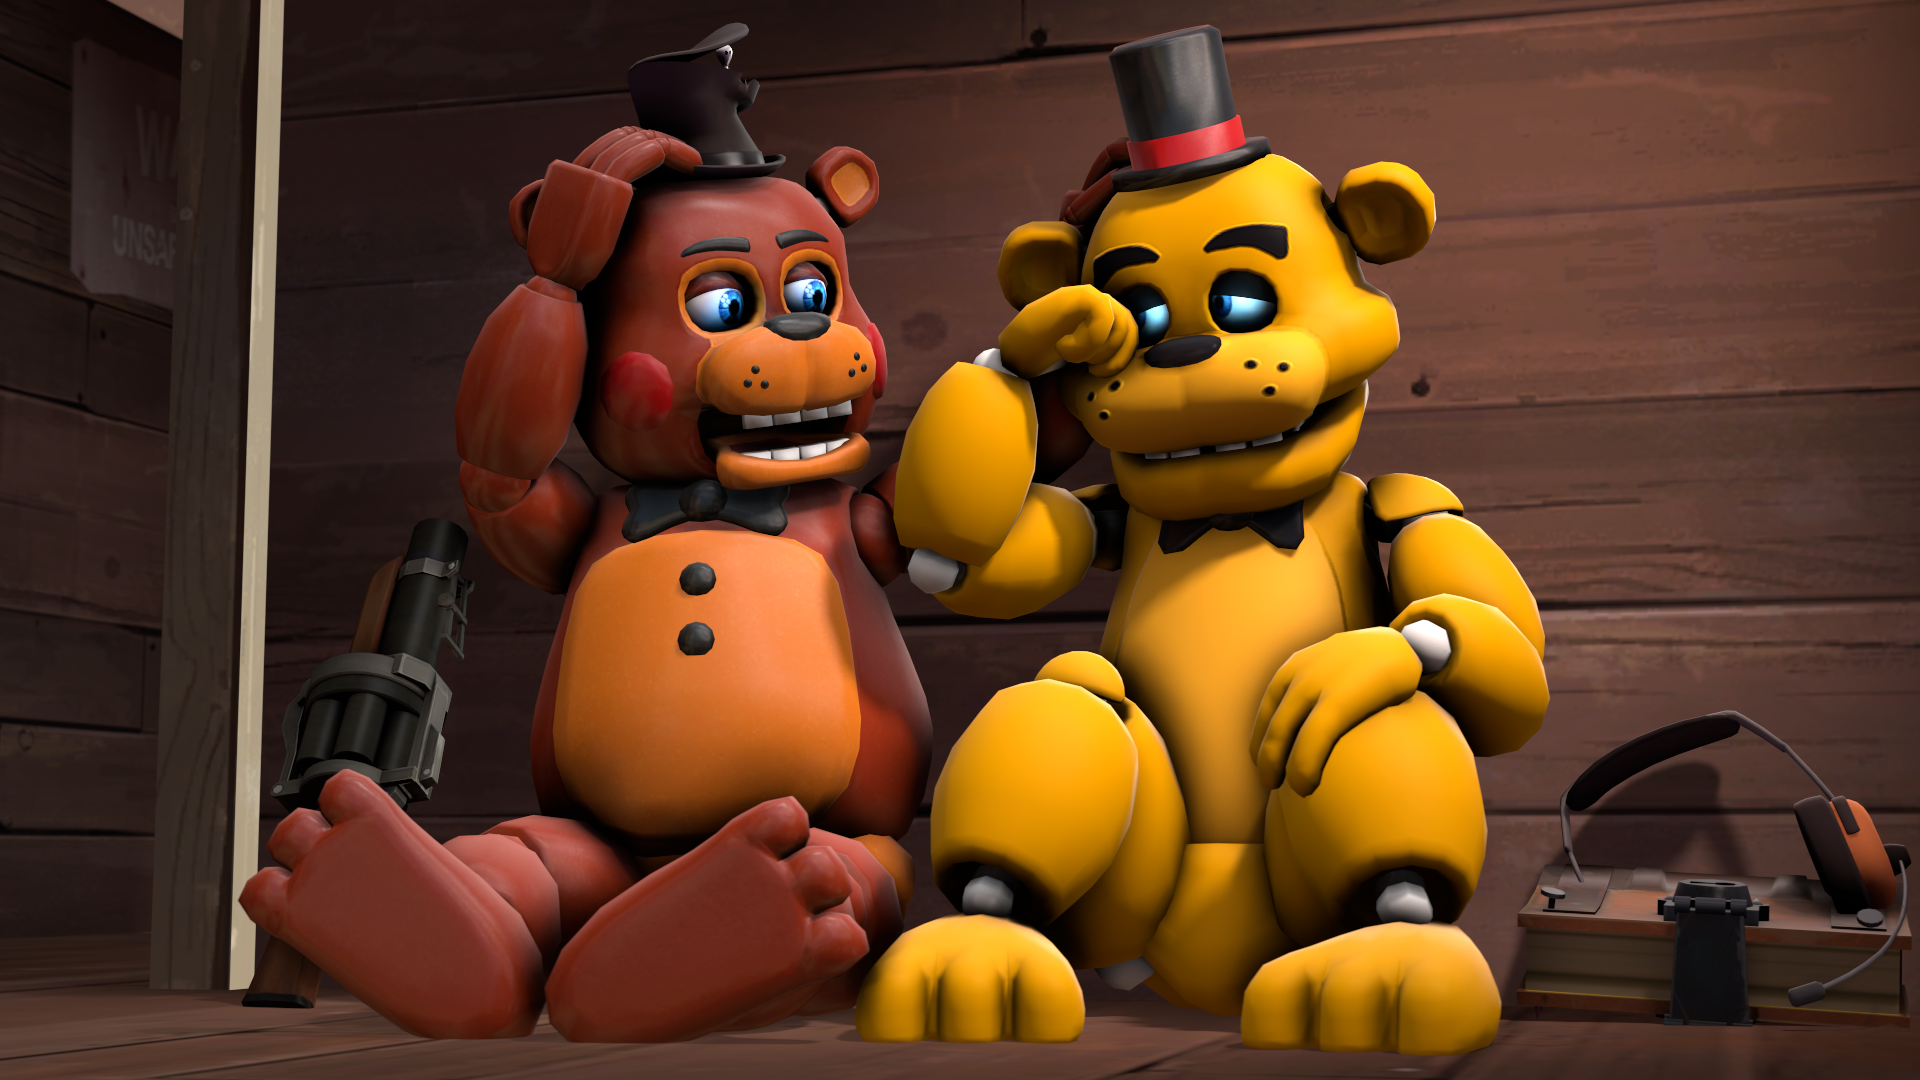 Group of Unwithered Original And Toy